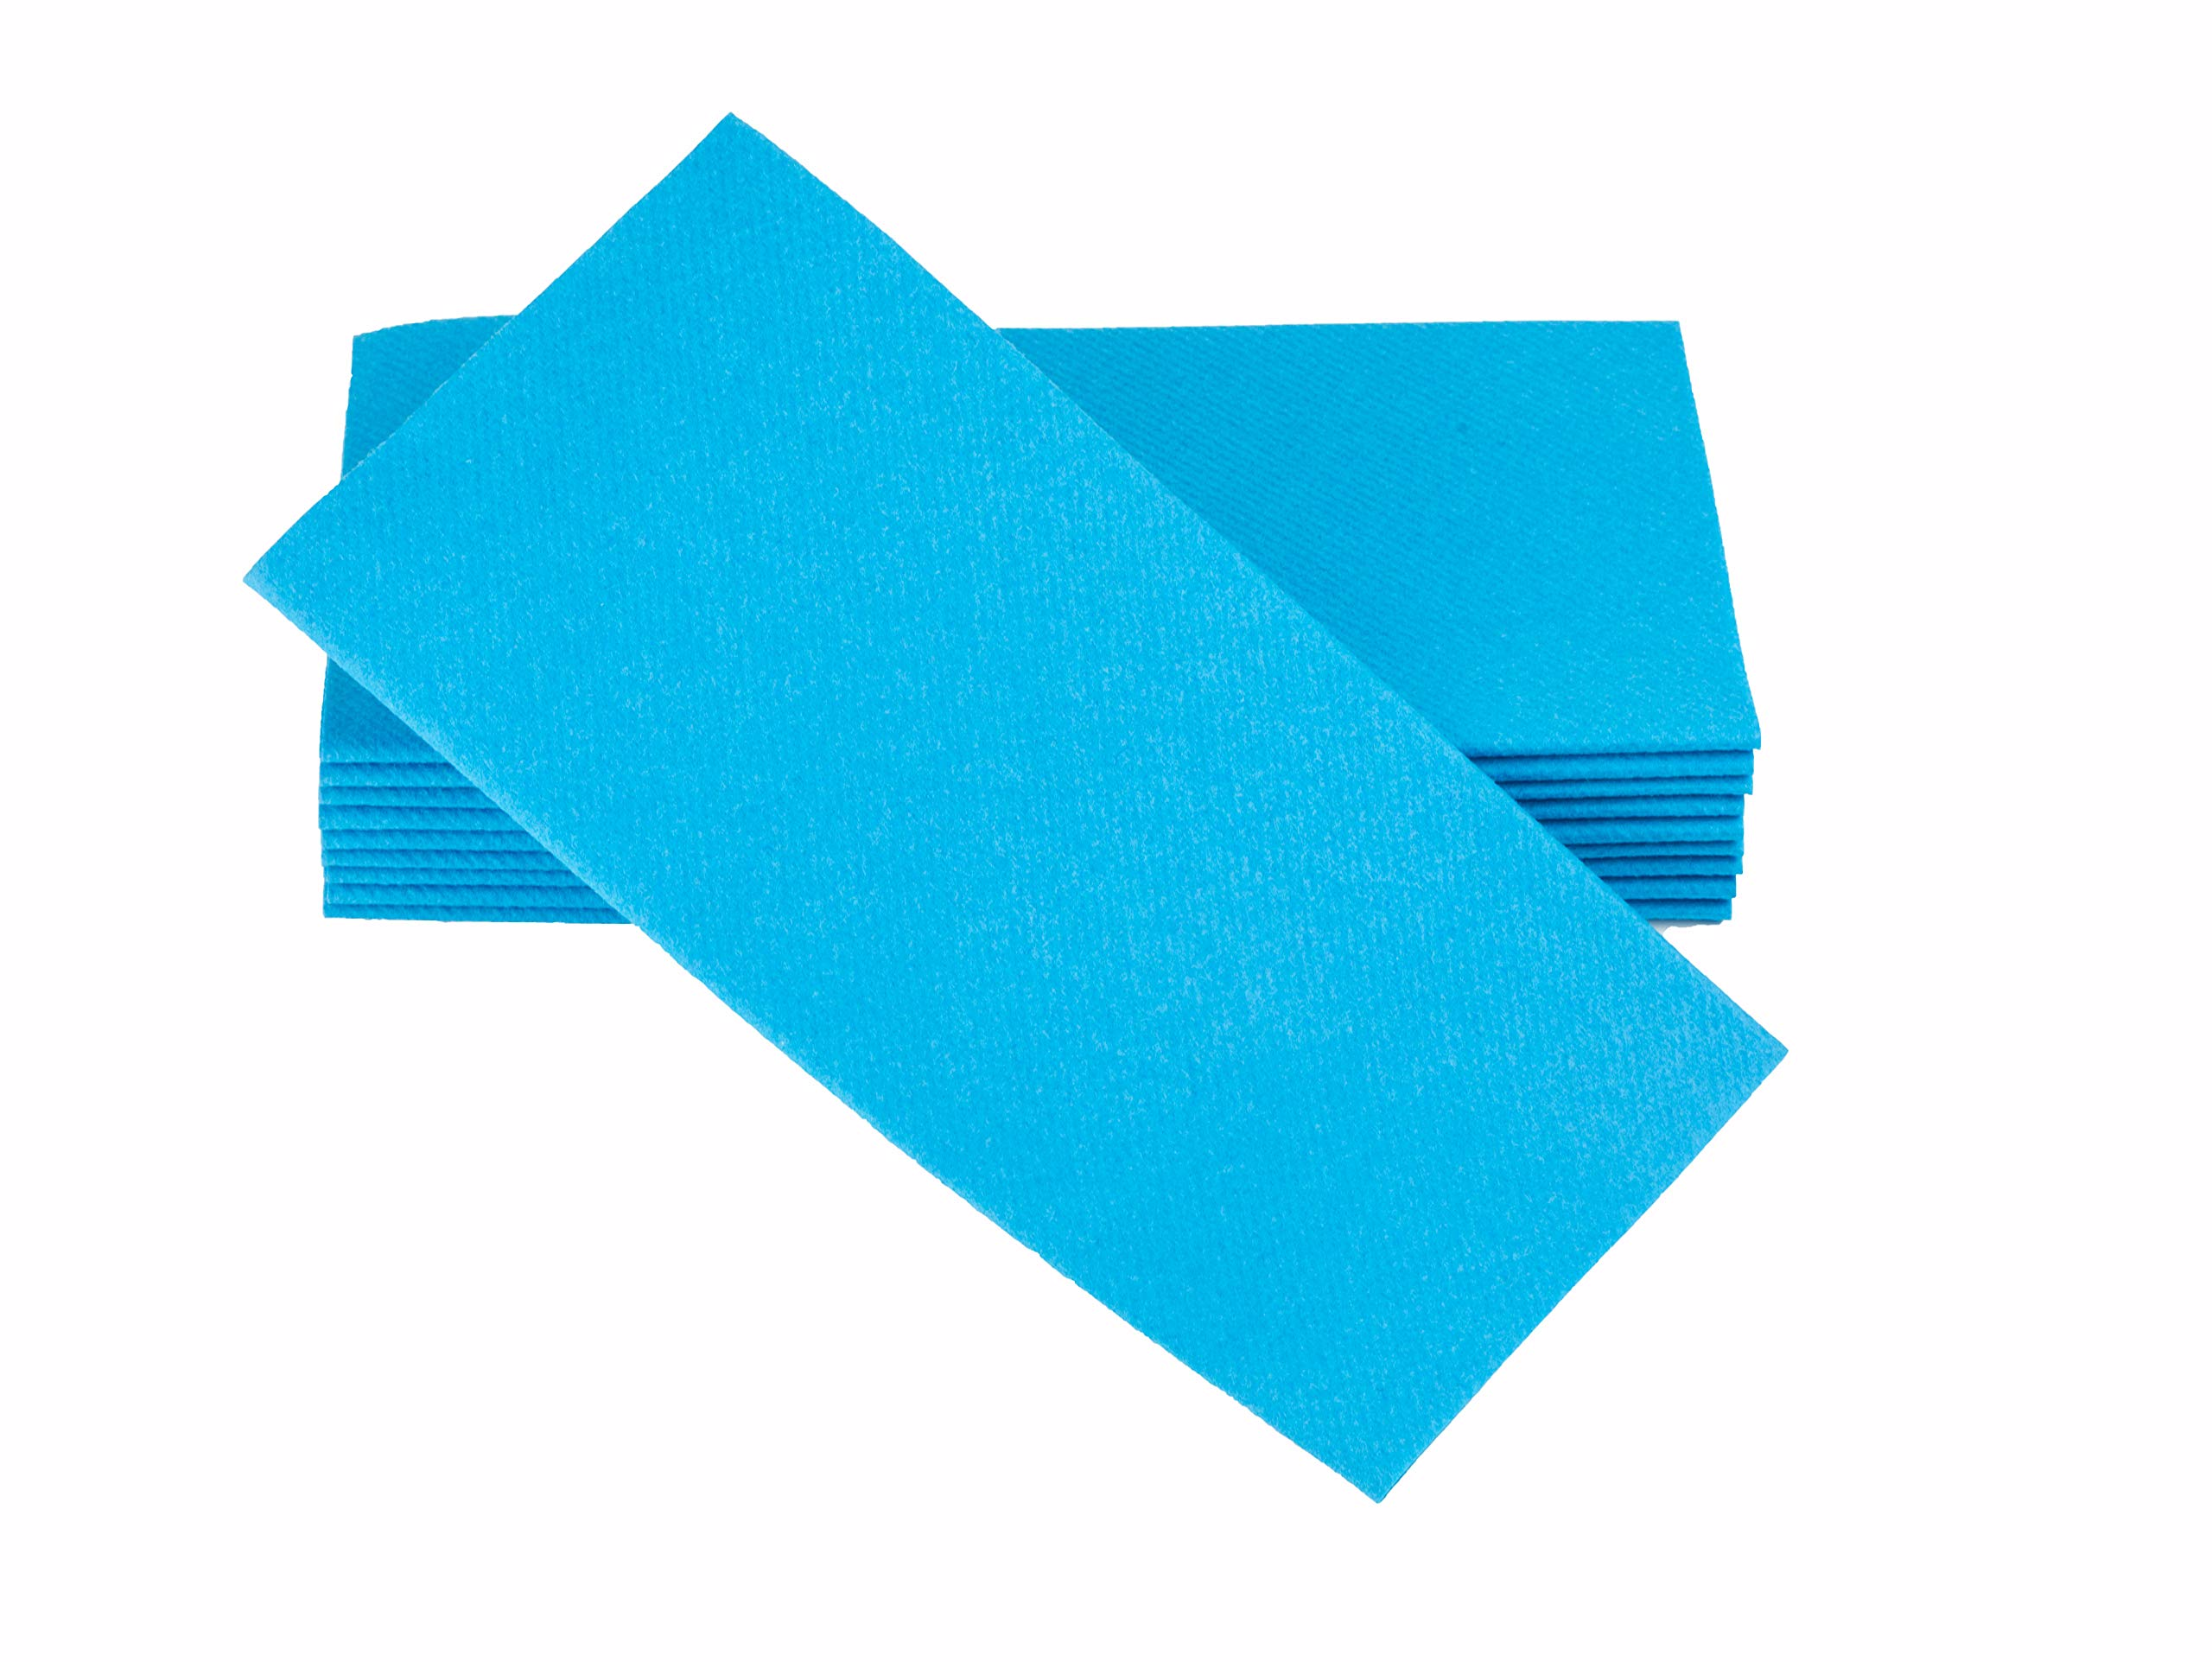 """Simulinen Colored Napkins - Decorative Cloth Like & Disposable, Dinner Napkins - Aqua Blue - Soft, Absorbent & Durable - 16""""x16"""" - Great for Any Occasion! - Box of 50"""